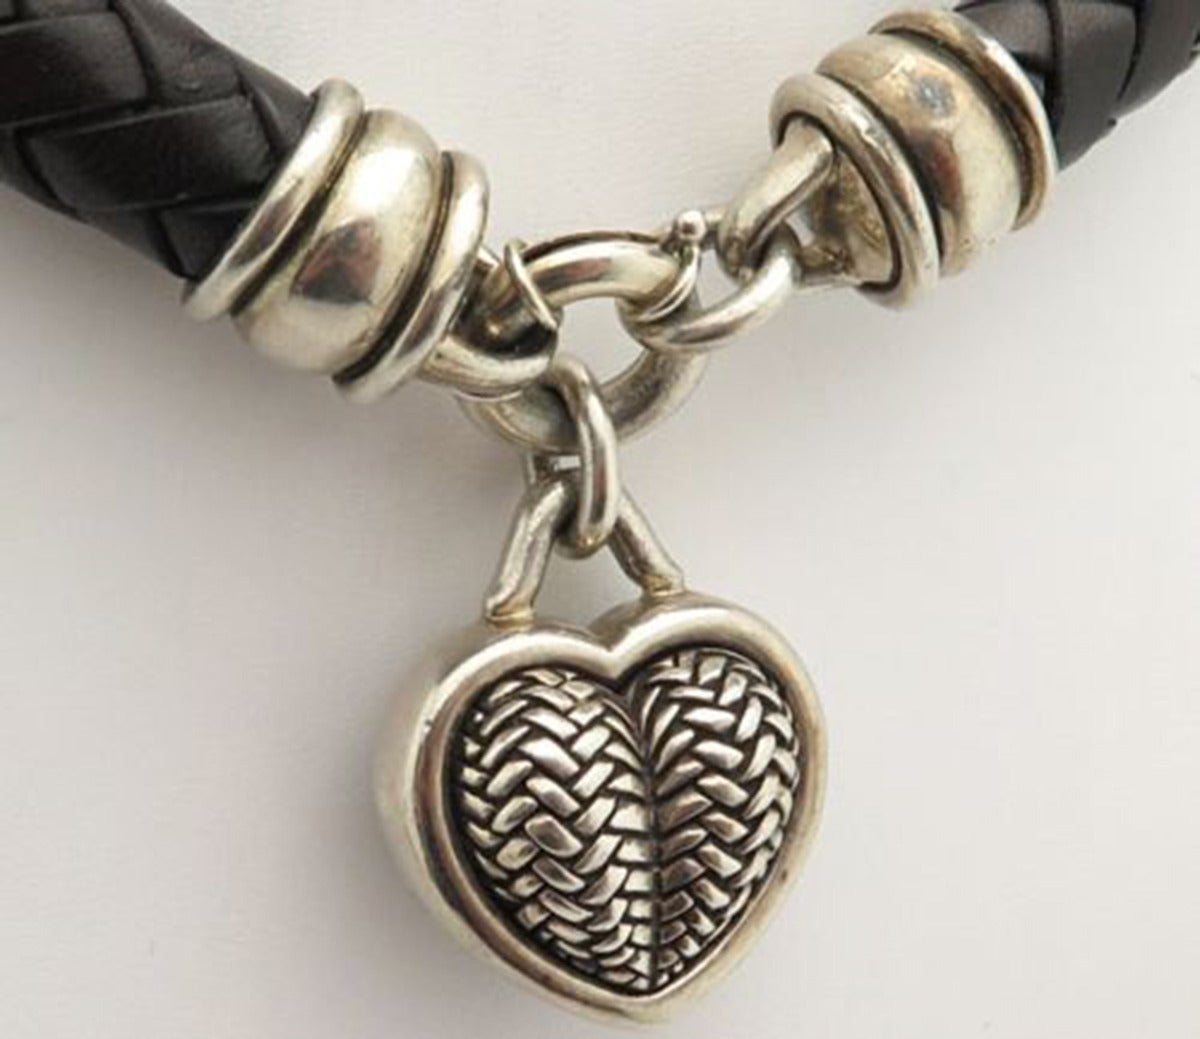 Barry Kieselstein Cord BKC Sterling Silver Heart Braided Leather Necklace In Excellent Condition For Sale In Montreal, QC